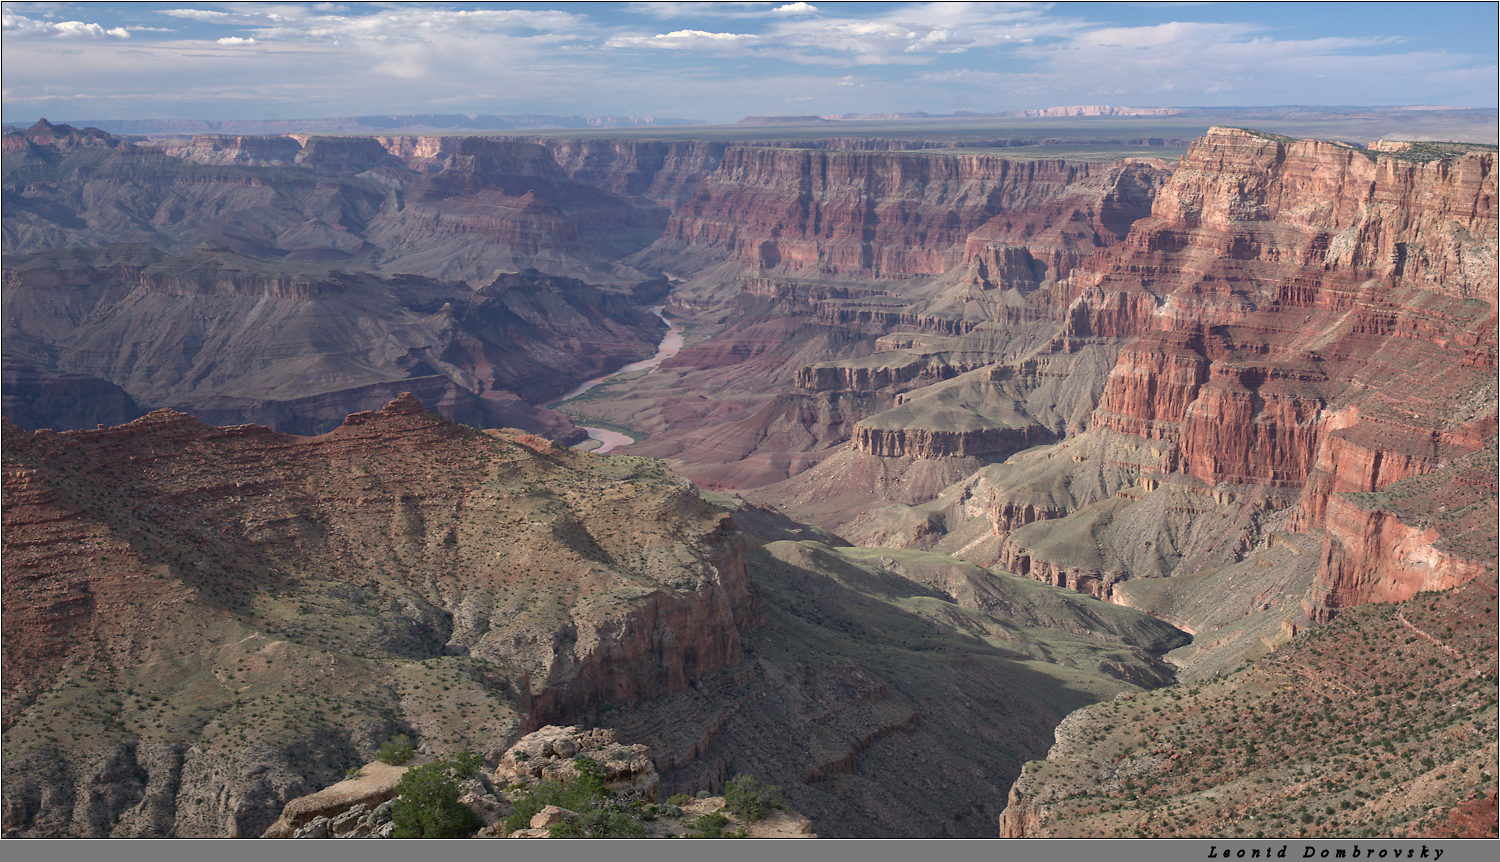 Evening view of the Canyon and Colorado River